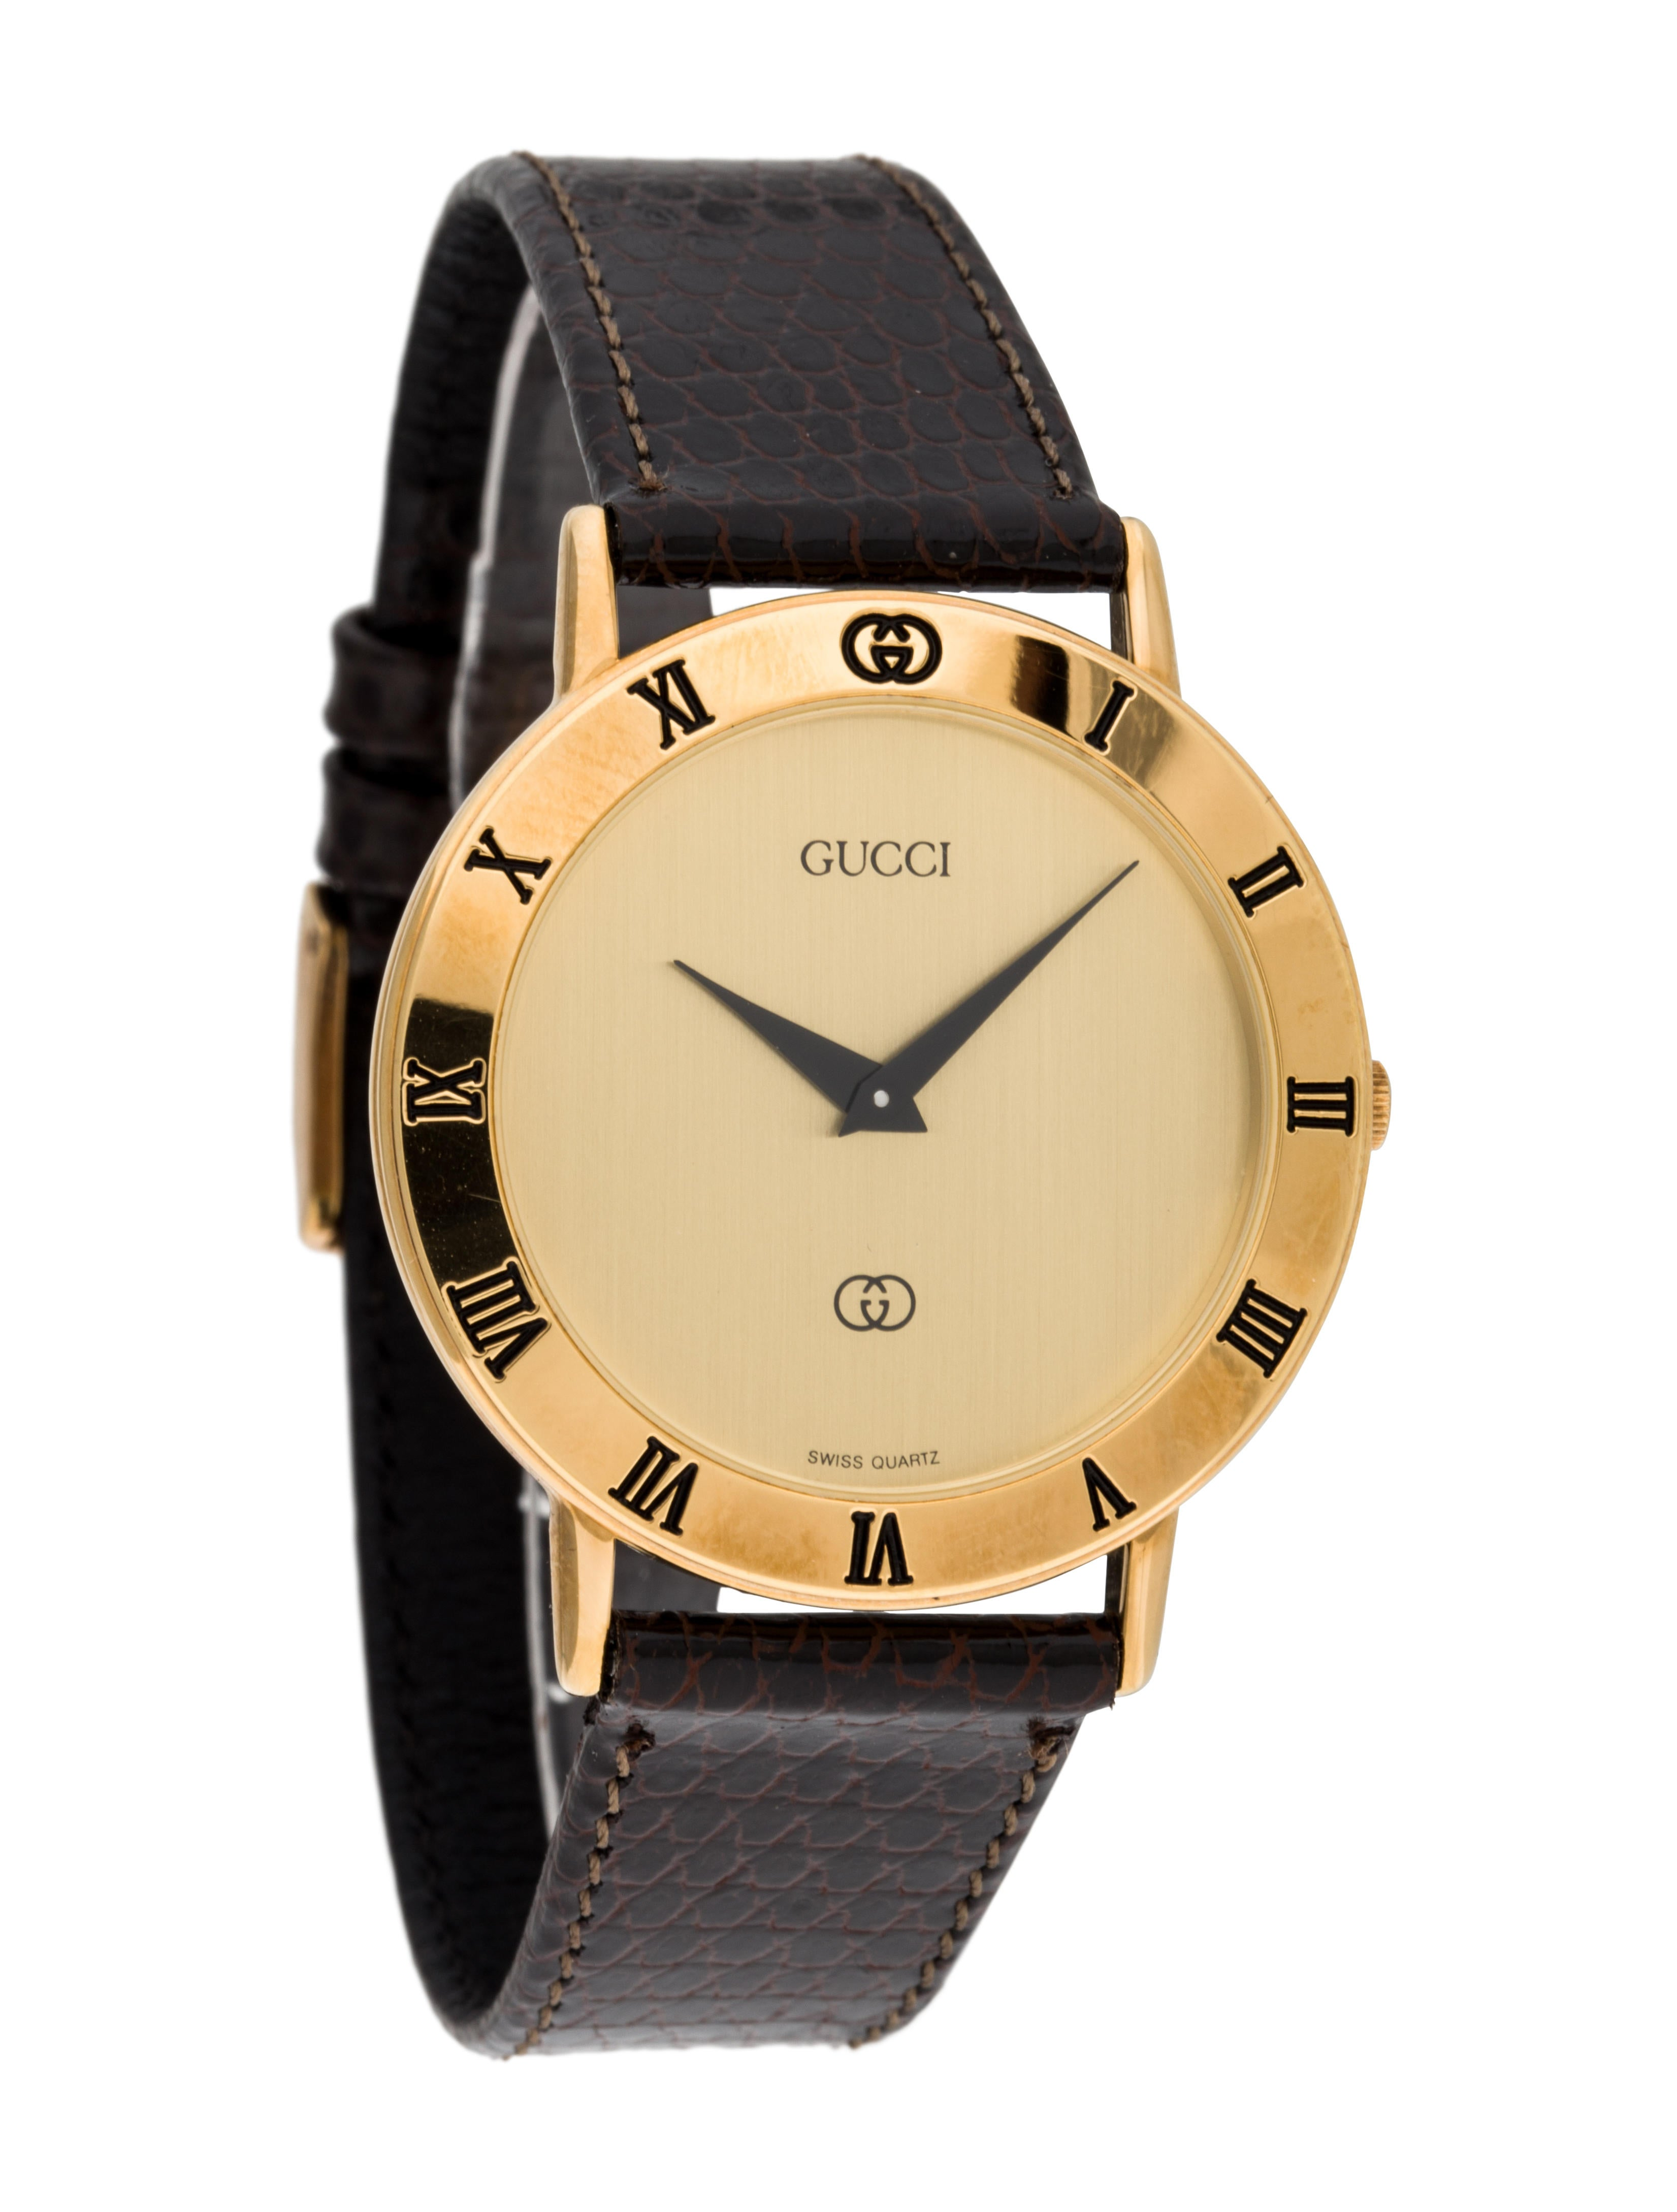 98307709be1 Gucci 3000M Watch - Strap - GUC80013